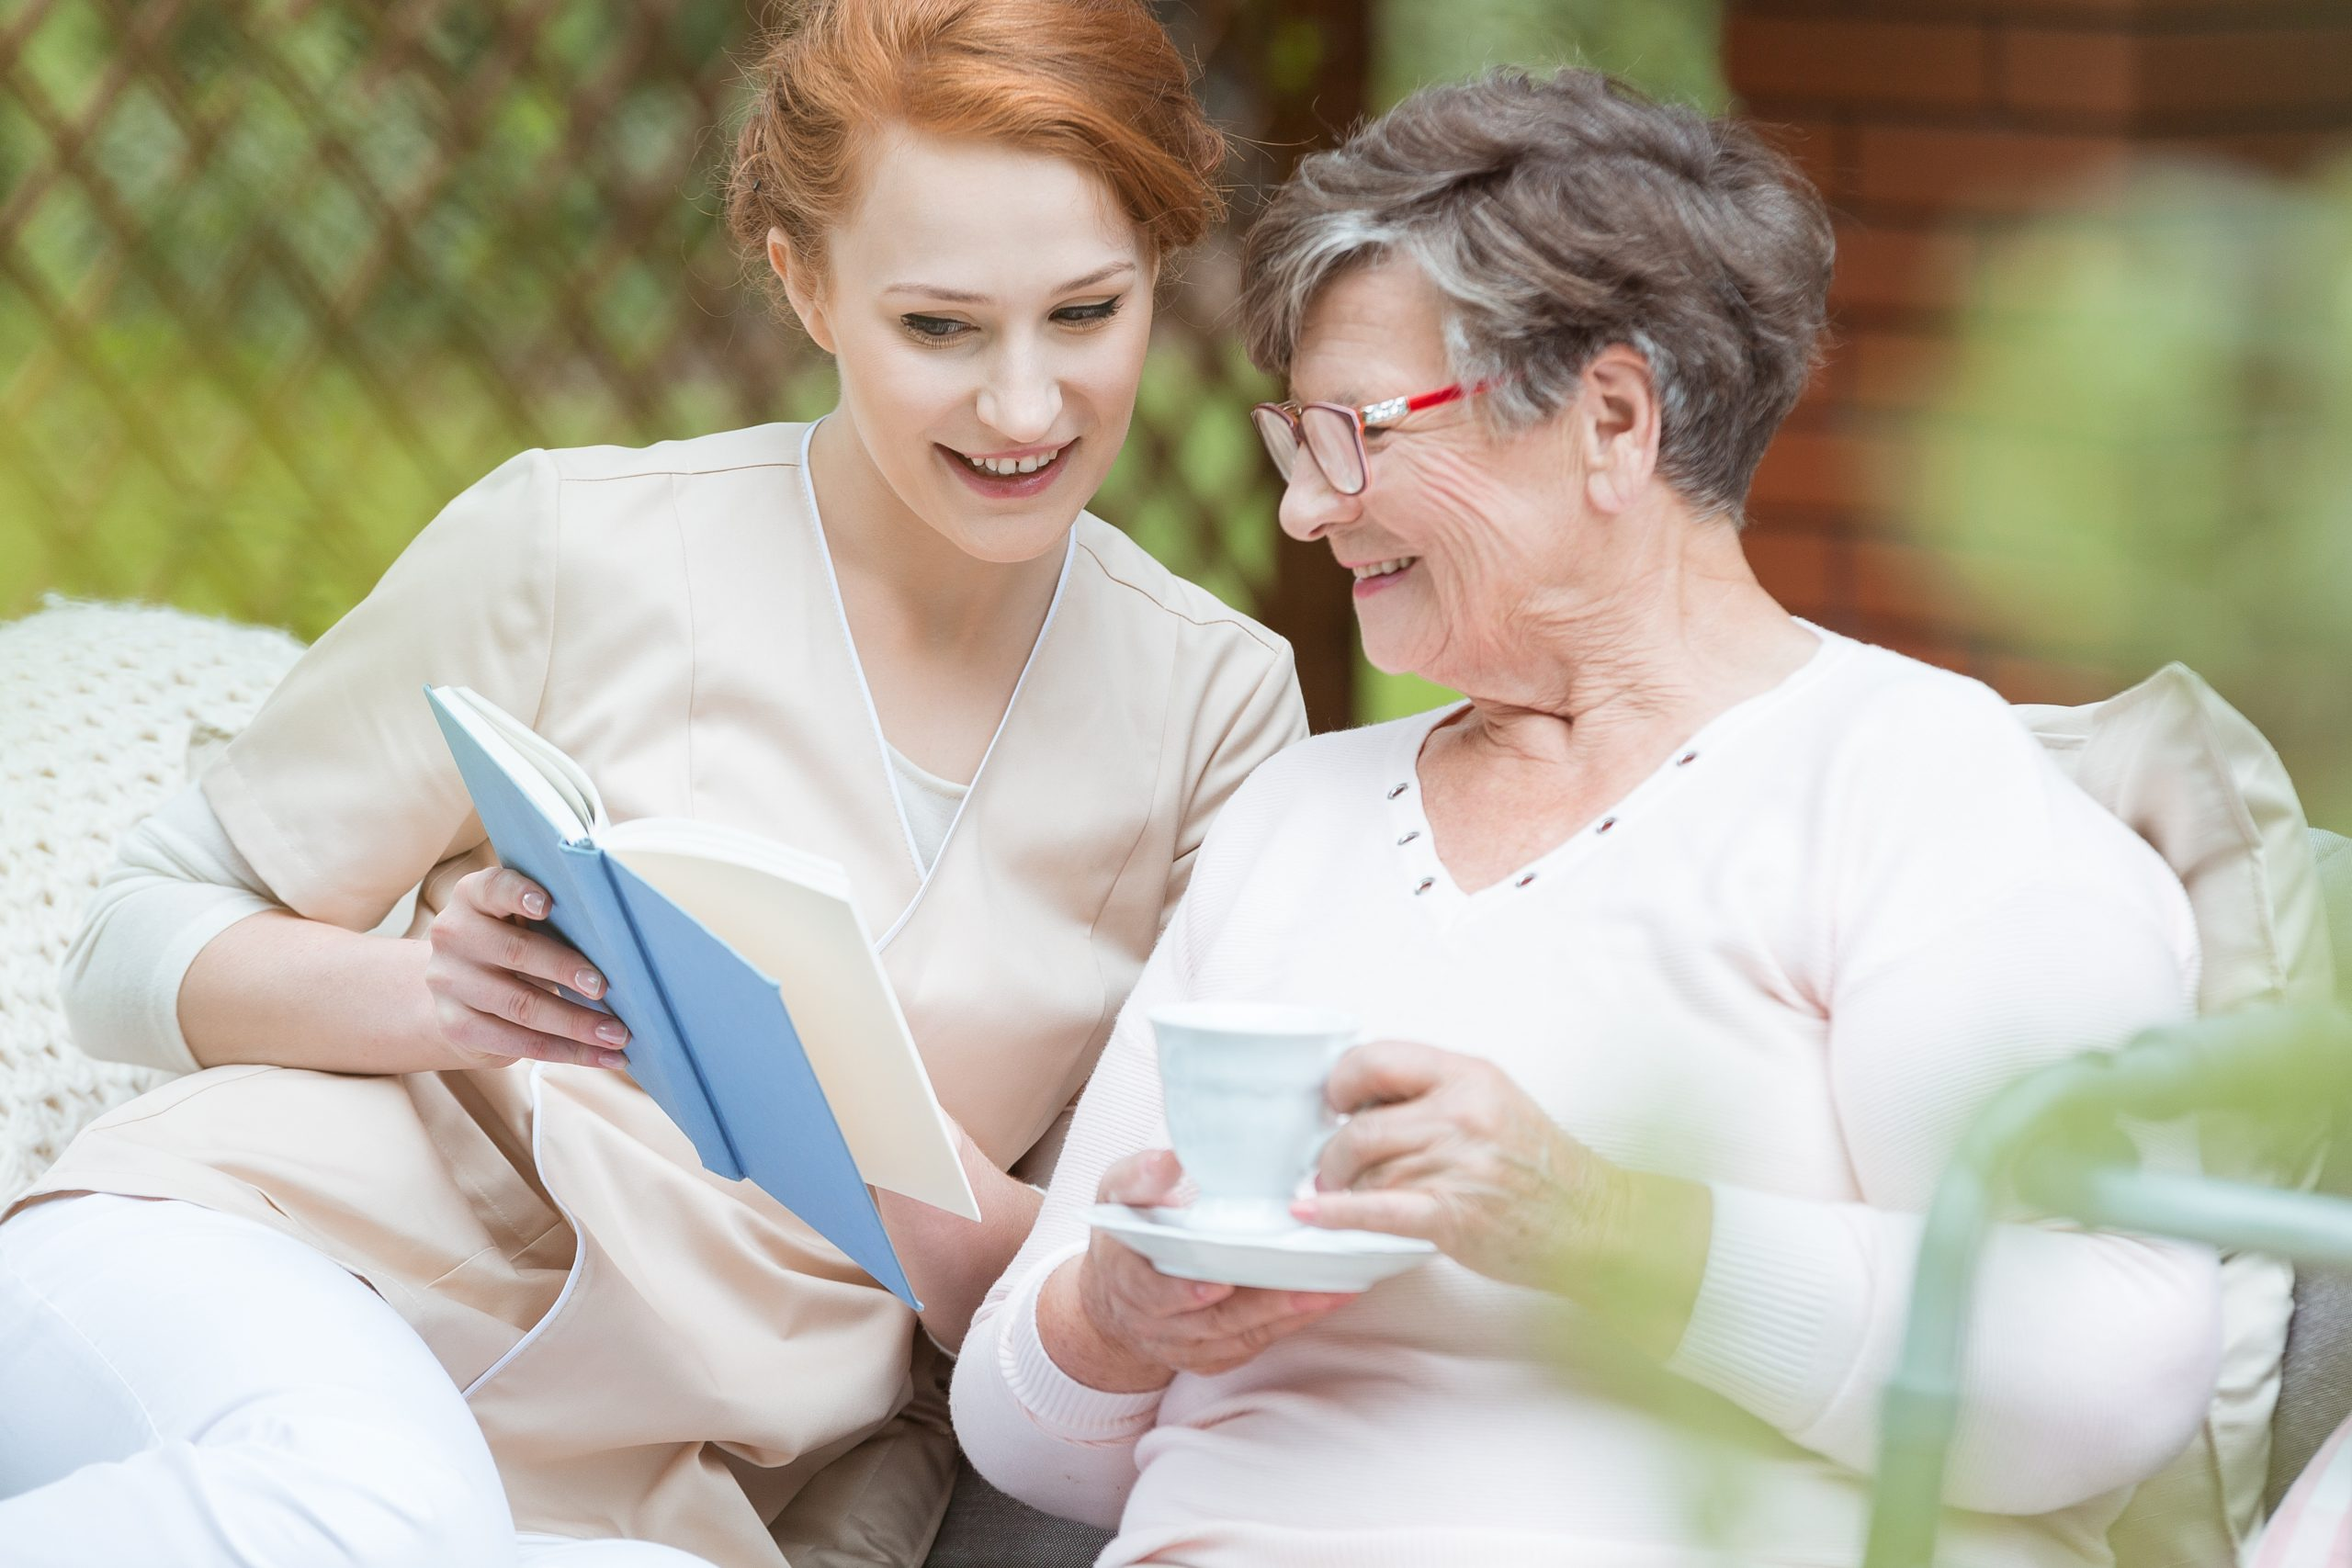 Younger woman sitting next to senior woman looking at her autobiography